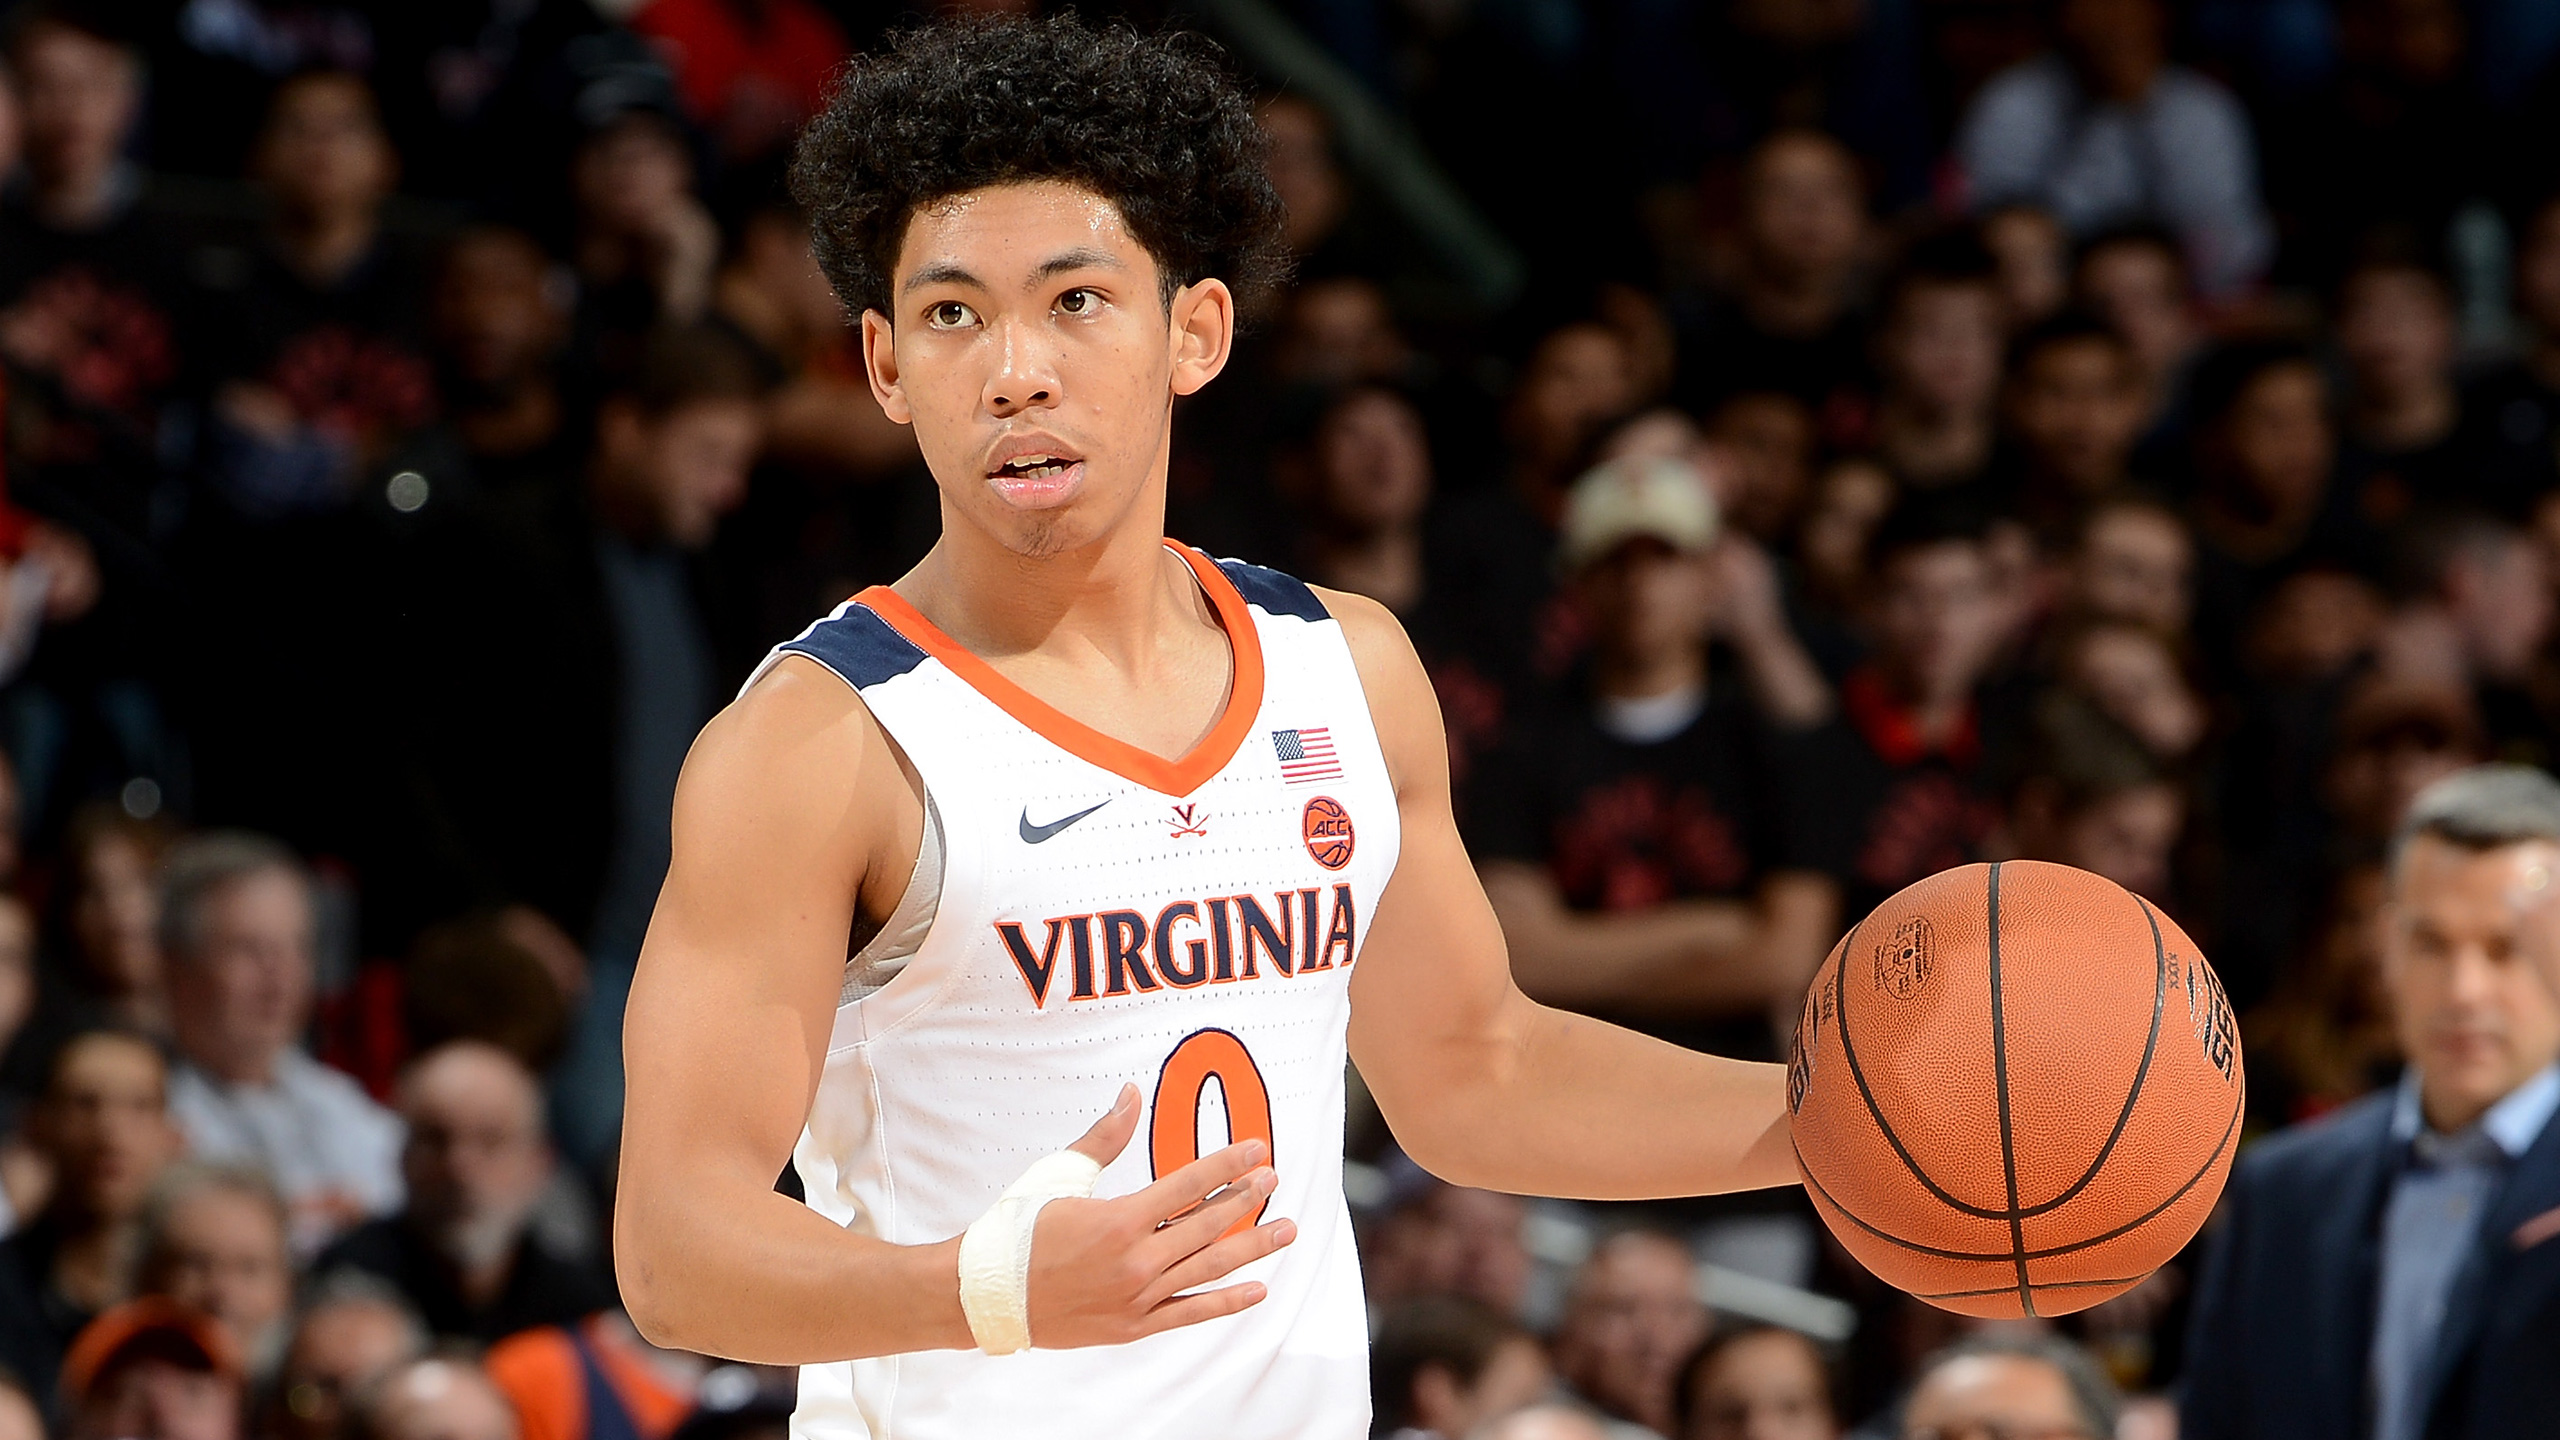 Wake Forest vs. #3 Virginia (M Basketball)